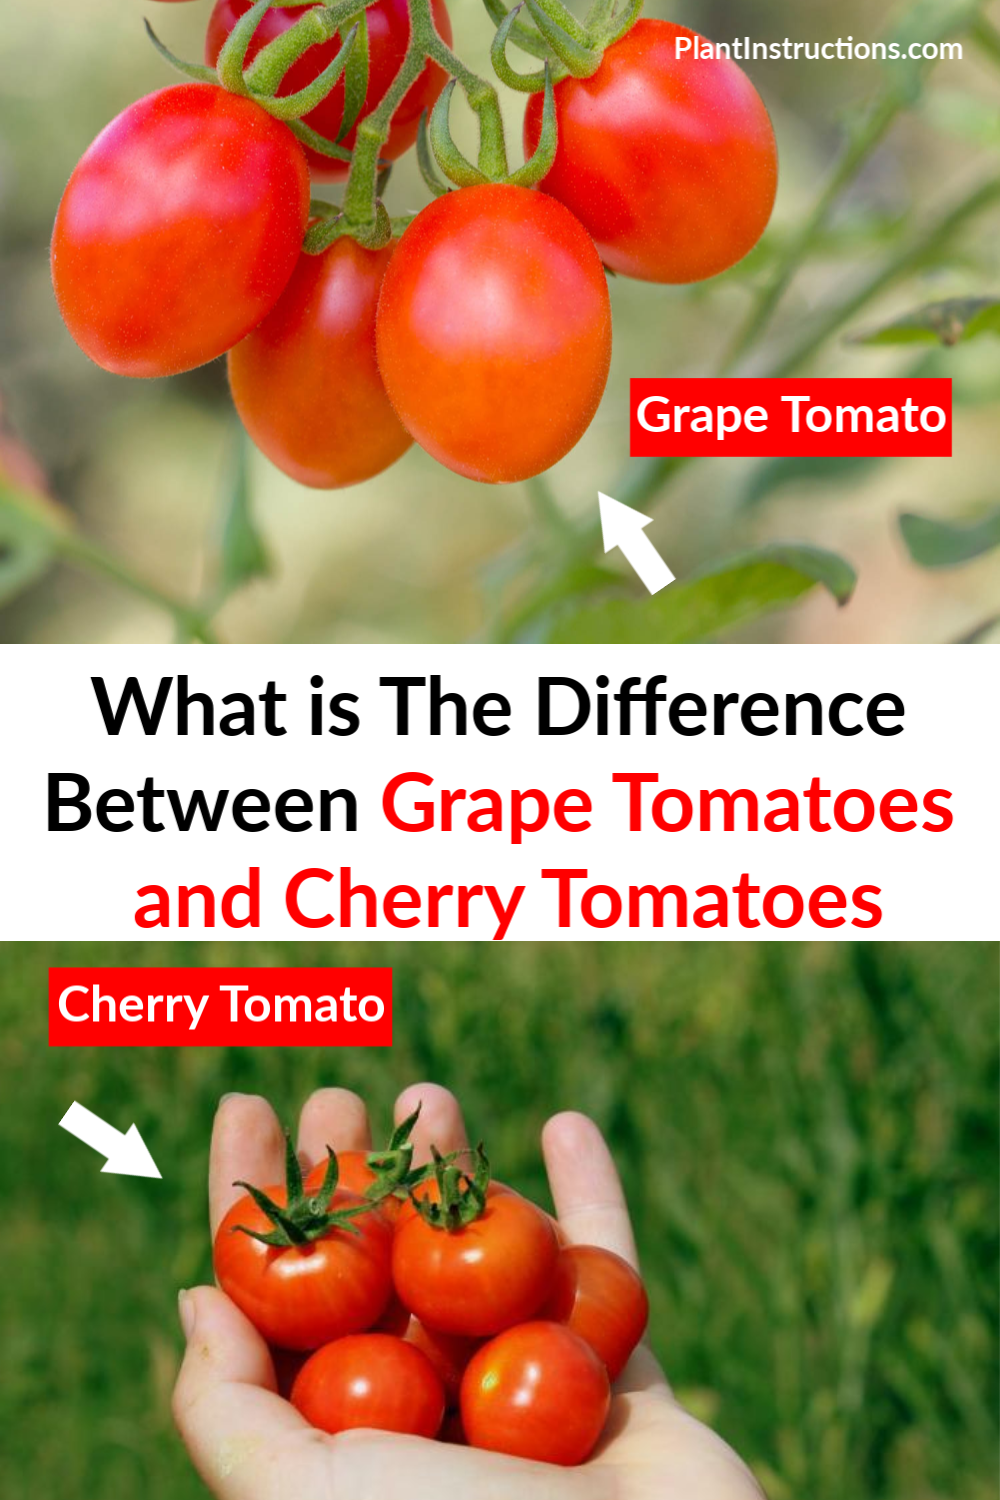 Both grape tomatoes and cherry tomatoes are delicious fruits you can grow at home, but what exactly is the difference between grape tomatoes and cherry tomatoes? #grapetomatoes #cherrytomatoes #plantinstructions